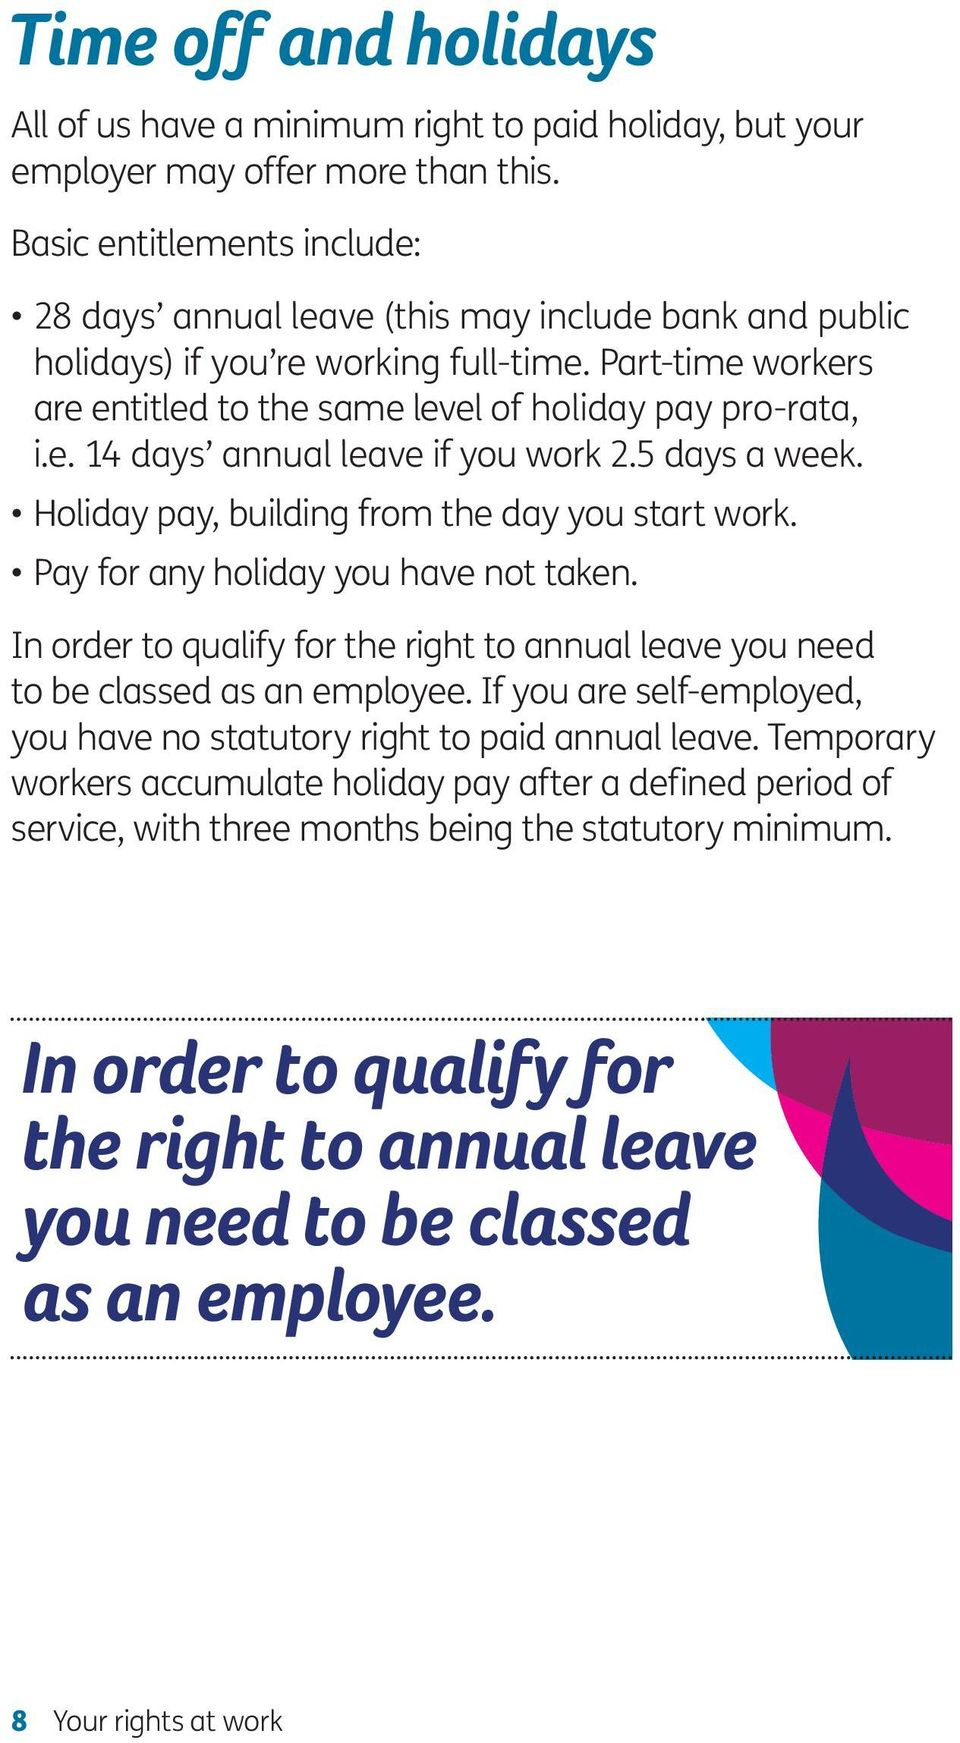 5 days a week. Holiday pay, building from the day you start work. Pay for any holiday you have not taken. In order to qualify for the right to annual leave you need to be classed as an employee.